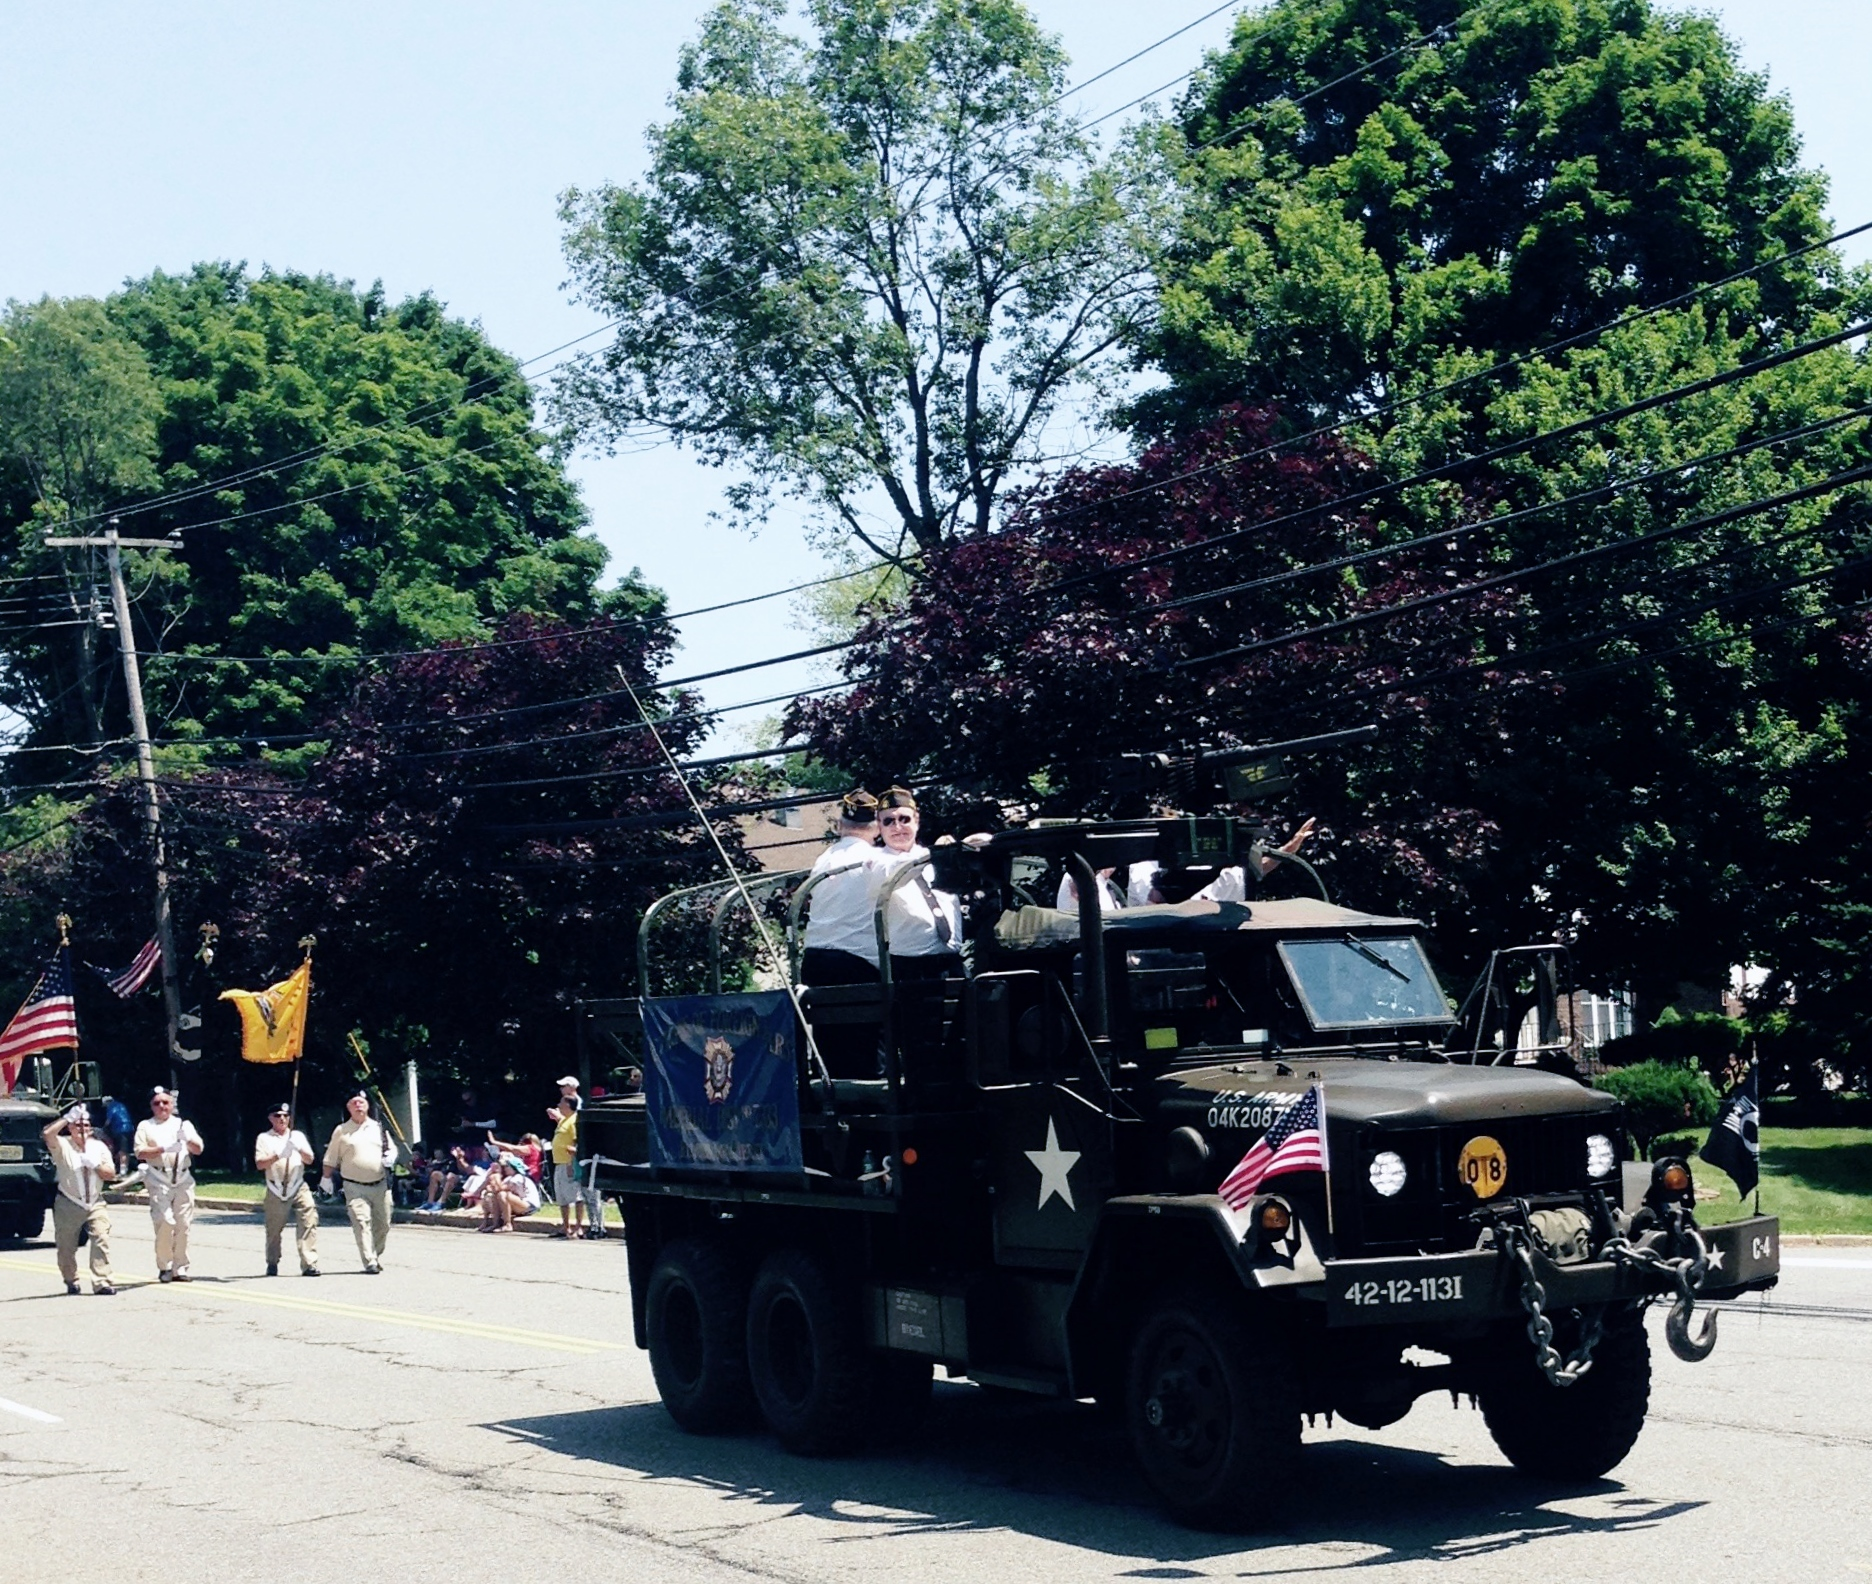 2015 Fourth of July Parade - VFW members Bill, John, Ray and Mario.